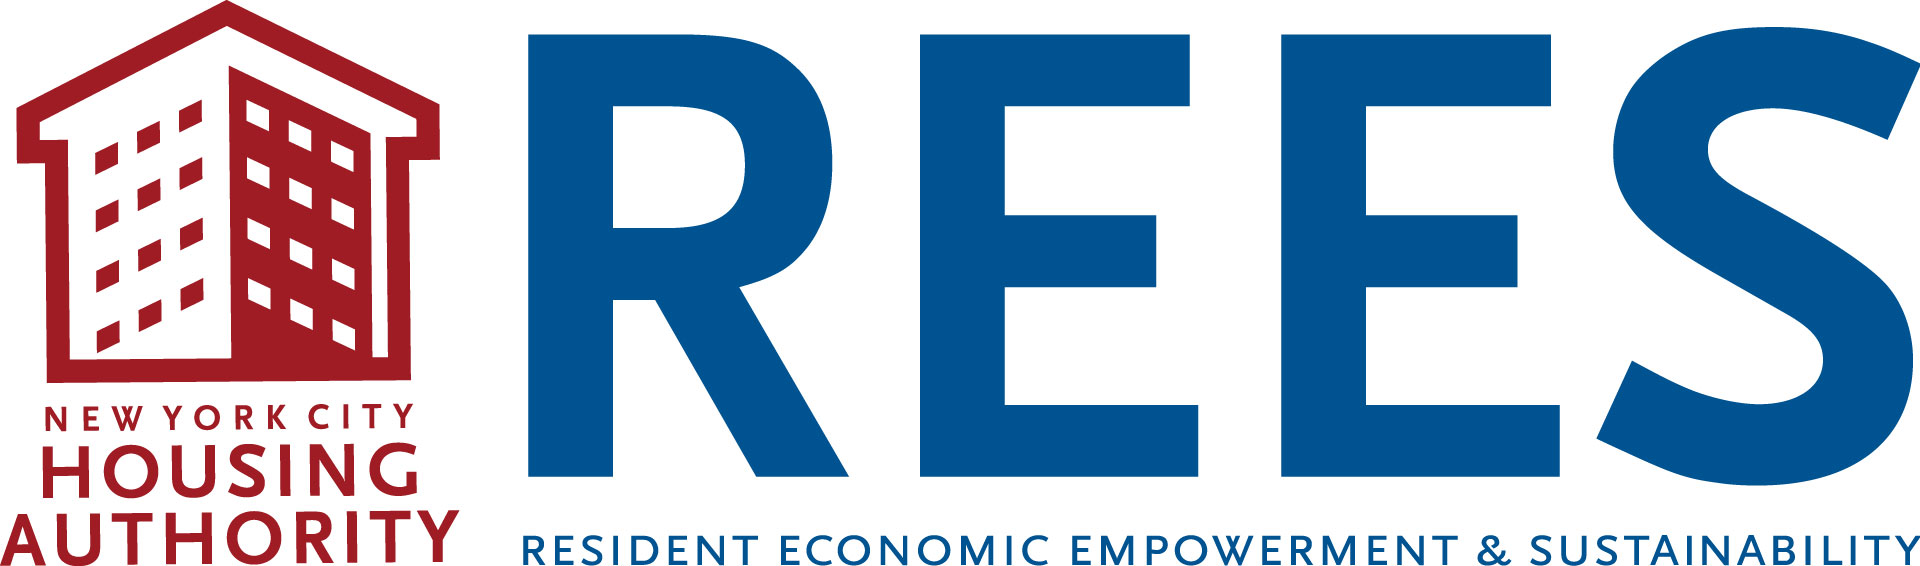 nycha_reese_logo_blue_3_R-1